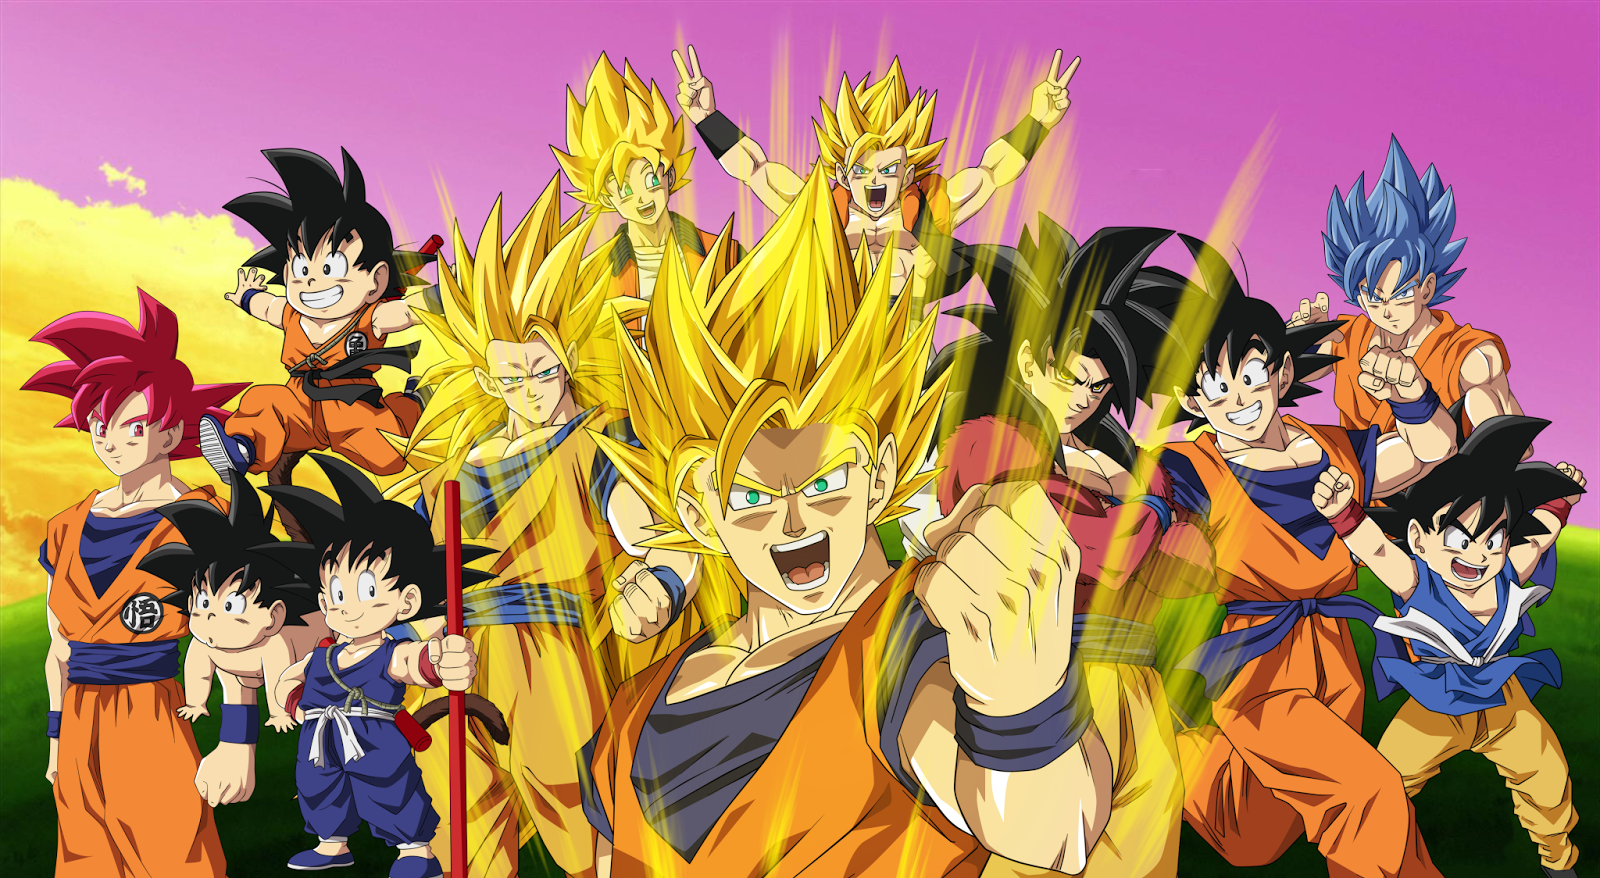 Dragon ball z nakedimages hentia image